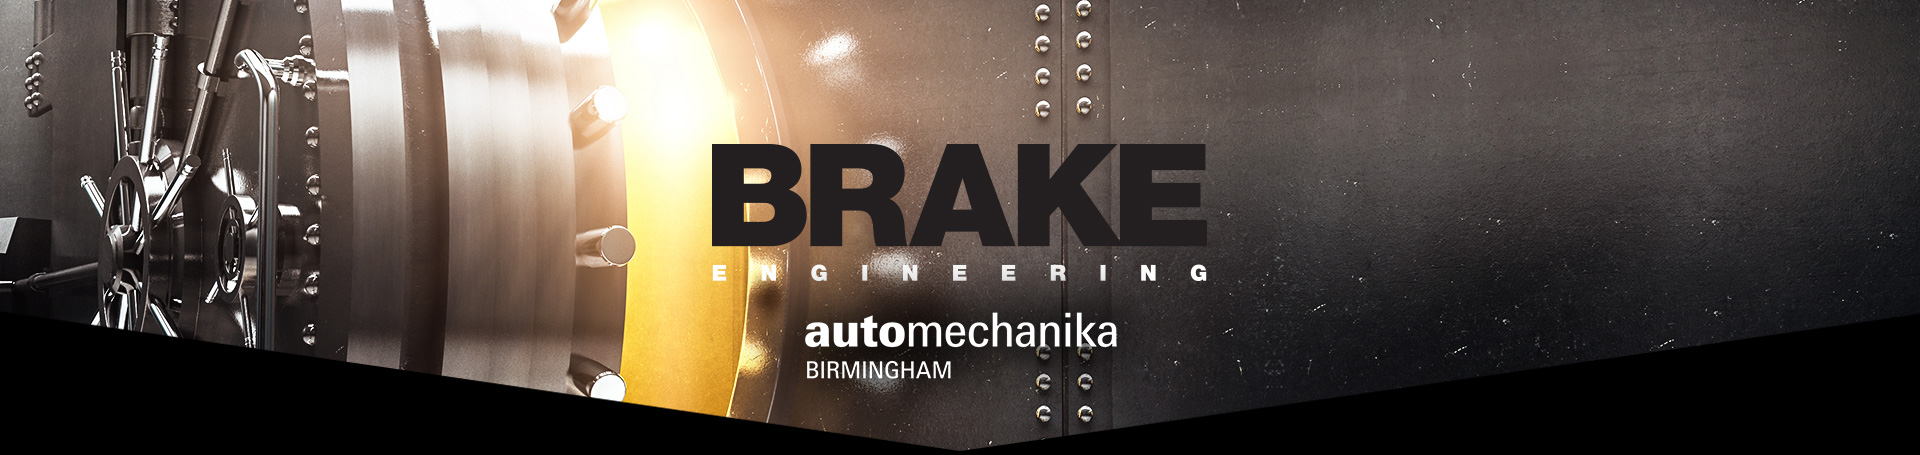 Automechanika Birmingham | Brake Engineering